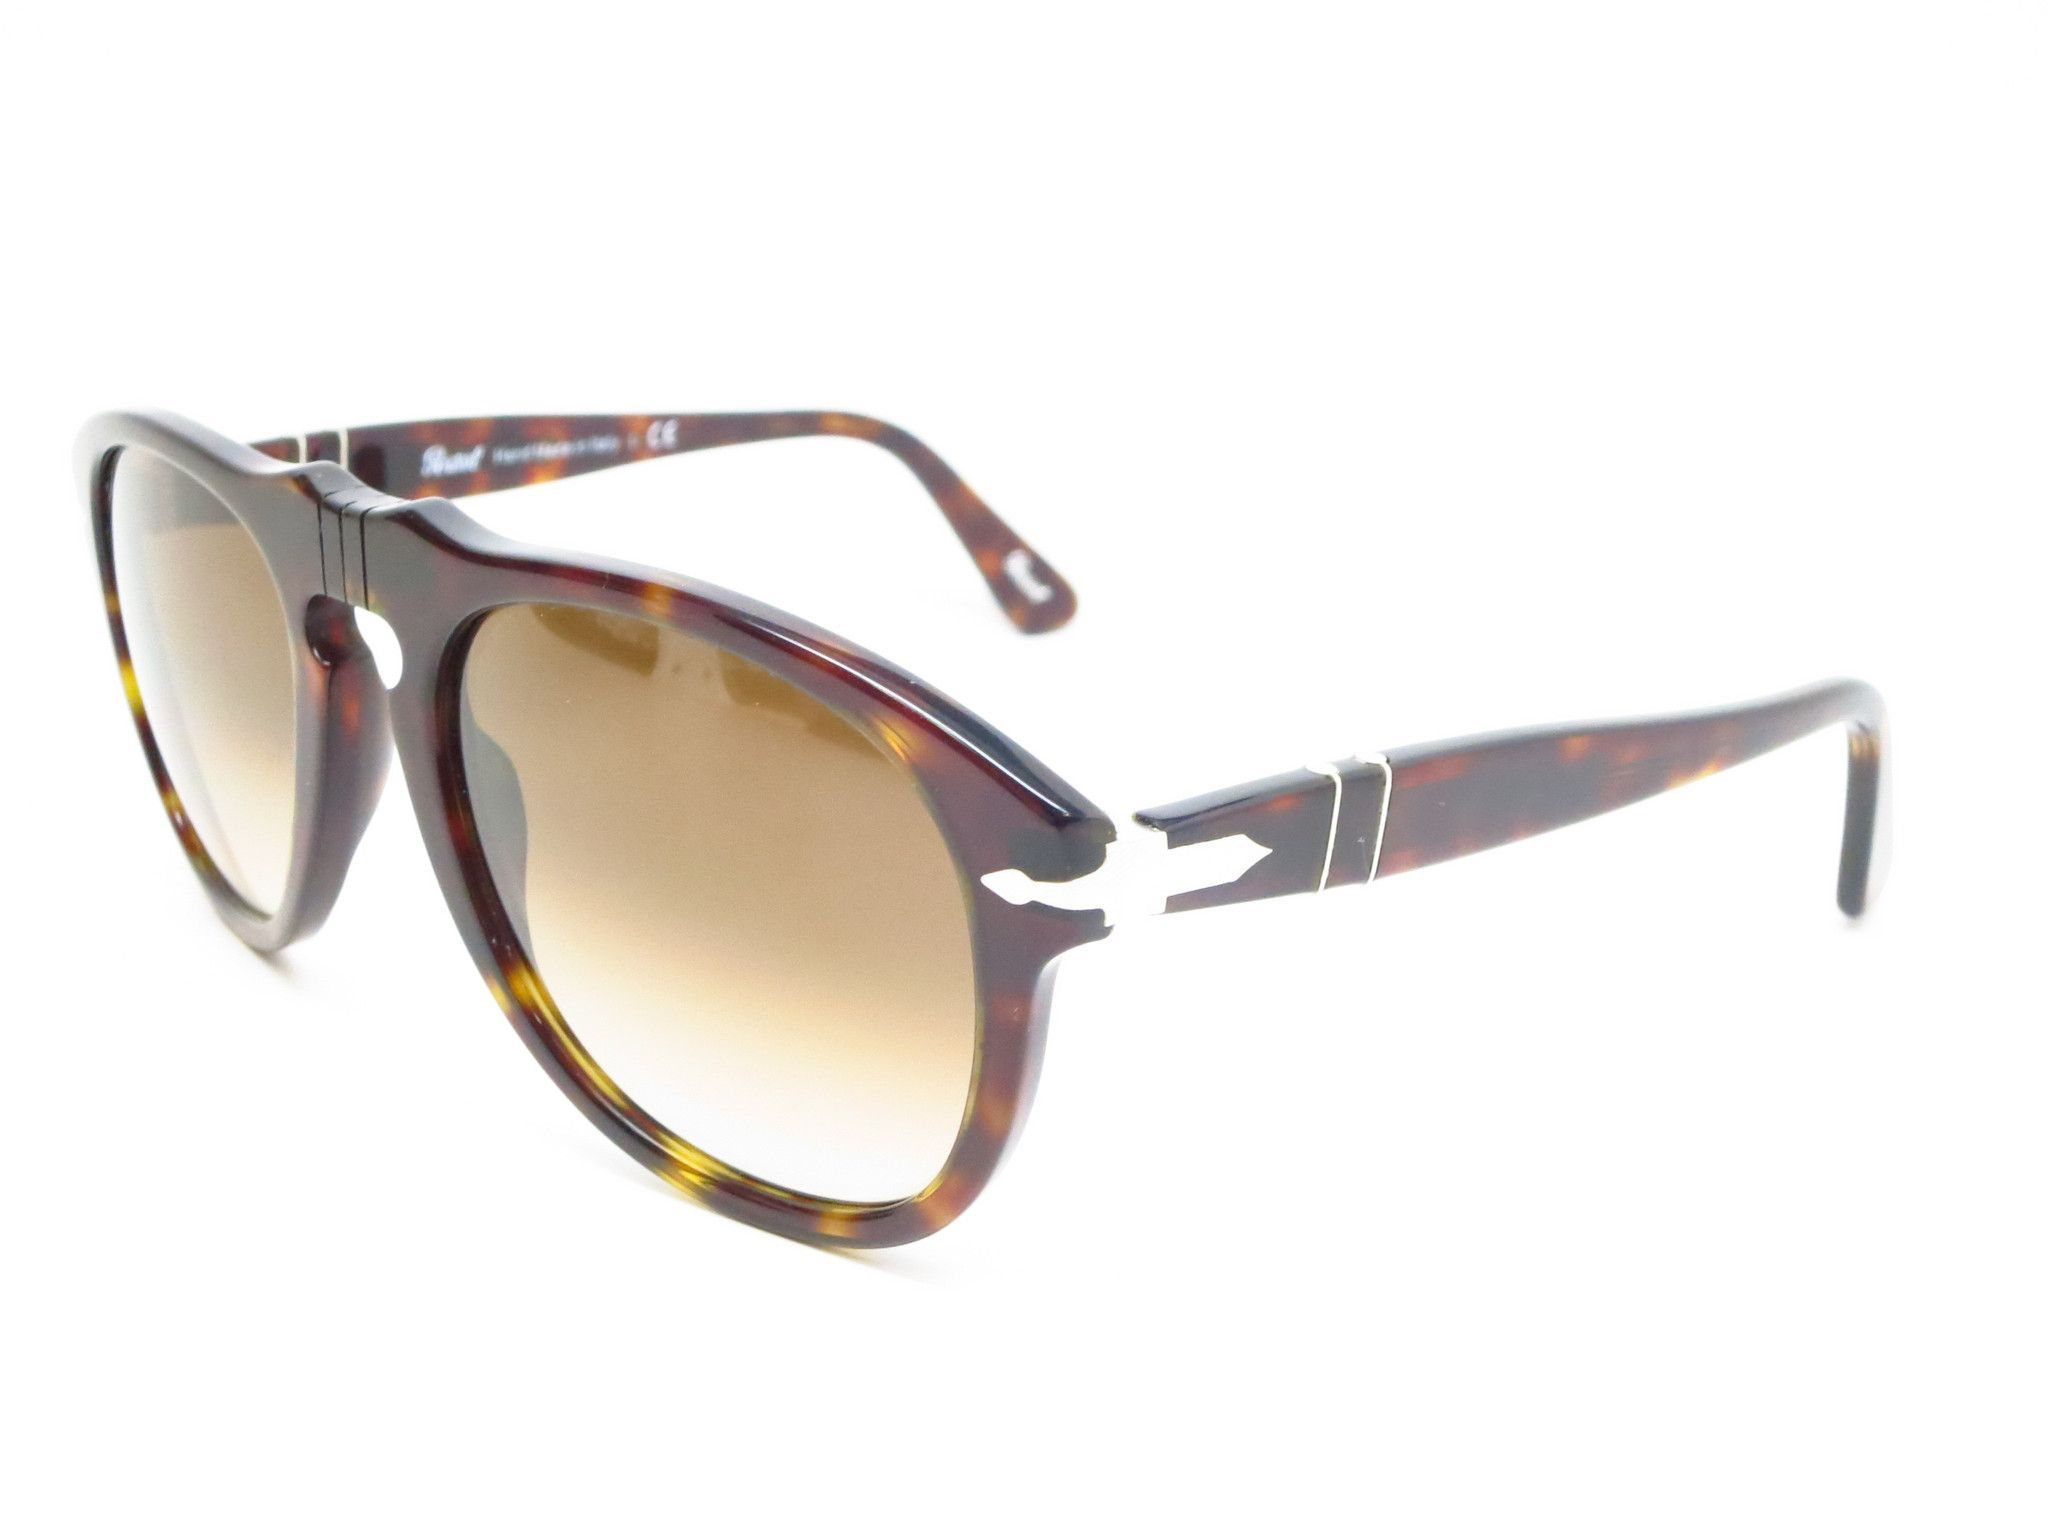 bc2ffe89c991 Persol PO 649-S Product Details Brand Name : Persol Model Number : PO 649-S  - Color Code : 24/51 Frame Color : Havana Lens Color : Brown Gradient  Polarized ...